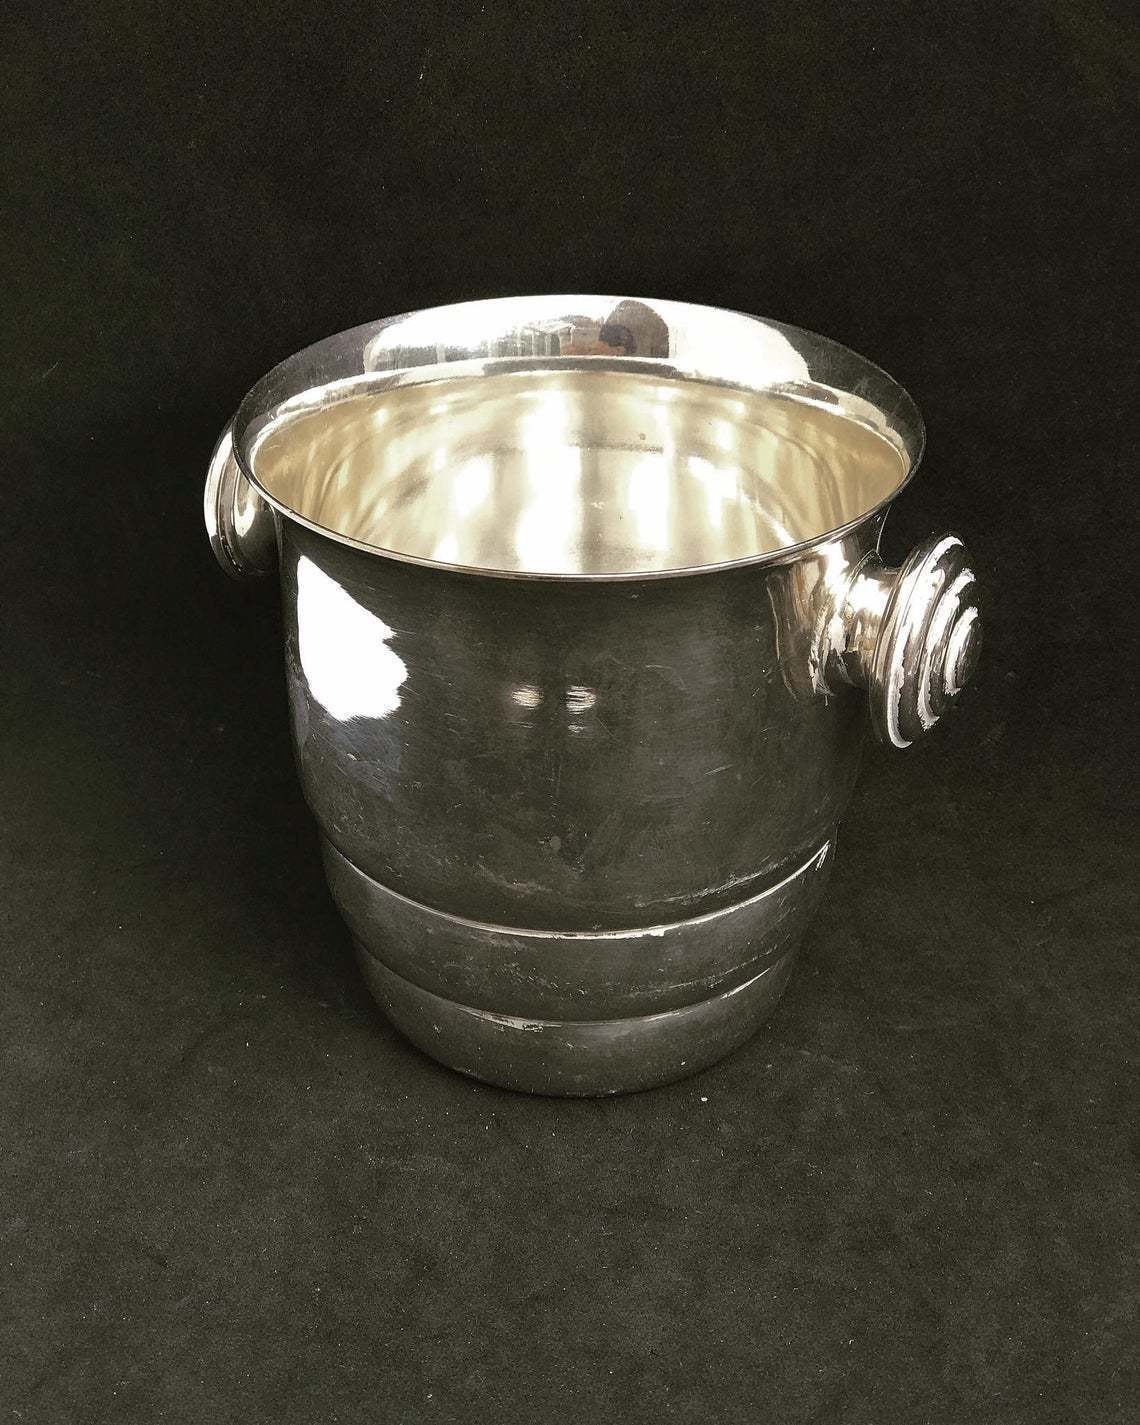 Art Deco Ice Bucket Silver Plated Sivar 1920s Bar Cart Decor Christmas Table Wine Chiller Cooler Gift For Wedding Gift Man Cave Vinterior